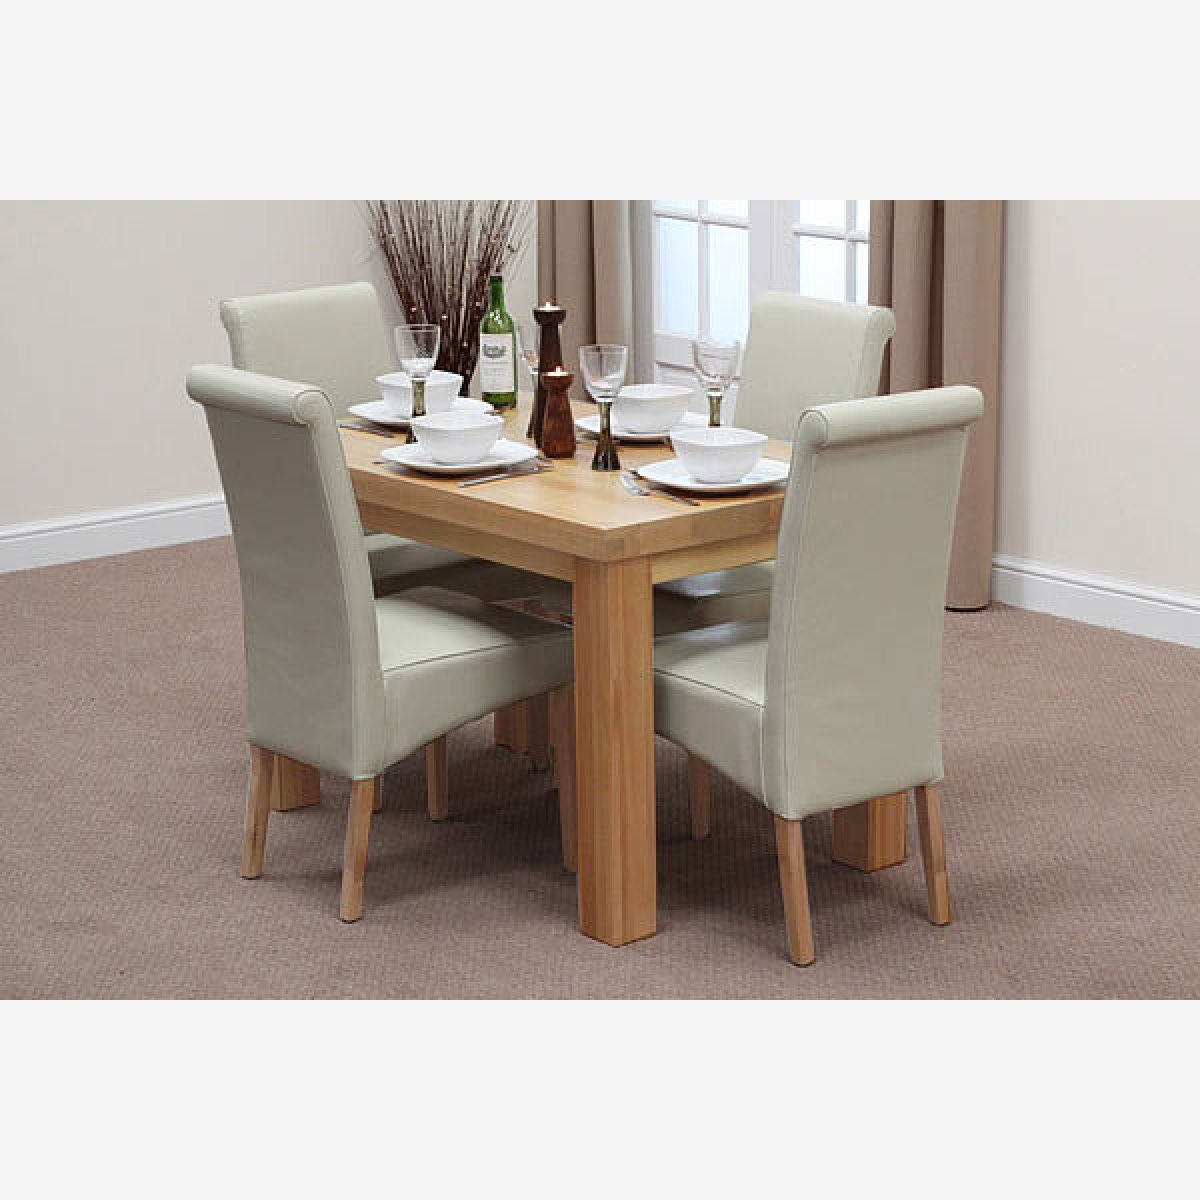 Solid Oak Dining Chairs ~ Fresco ft solid oak dining table cream leather scroll